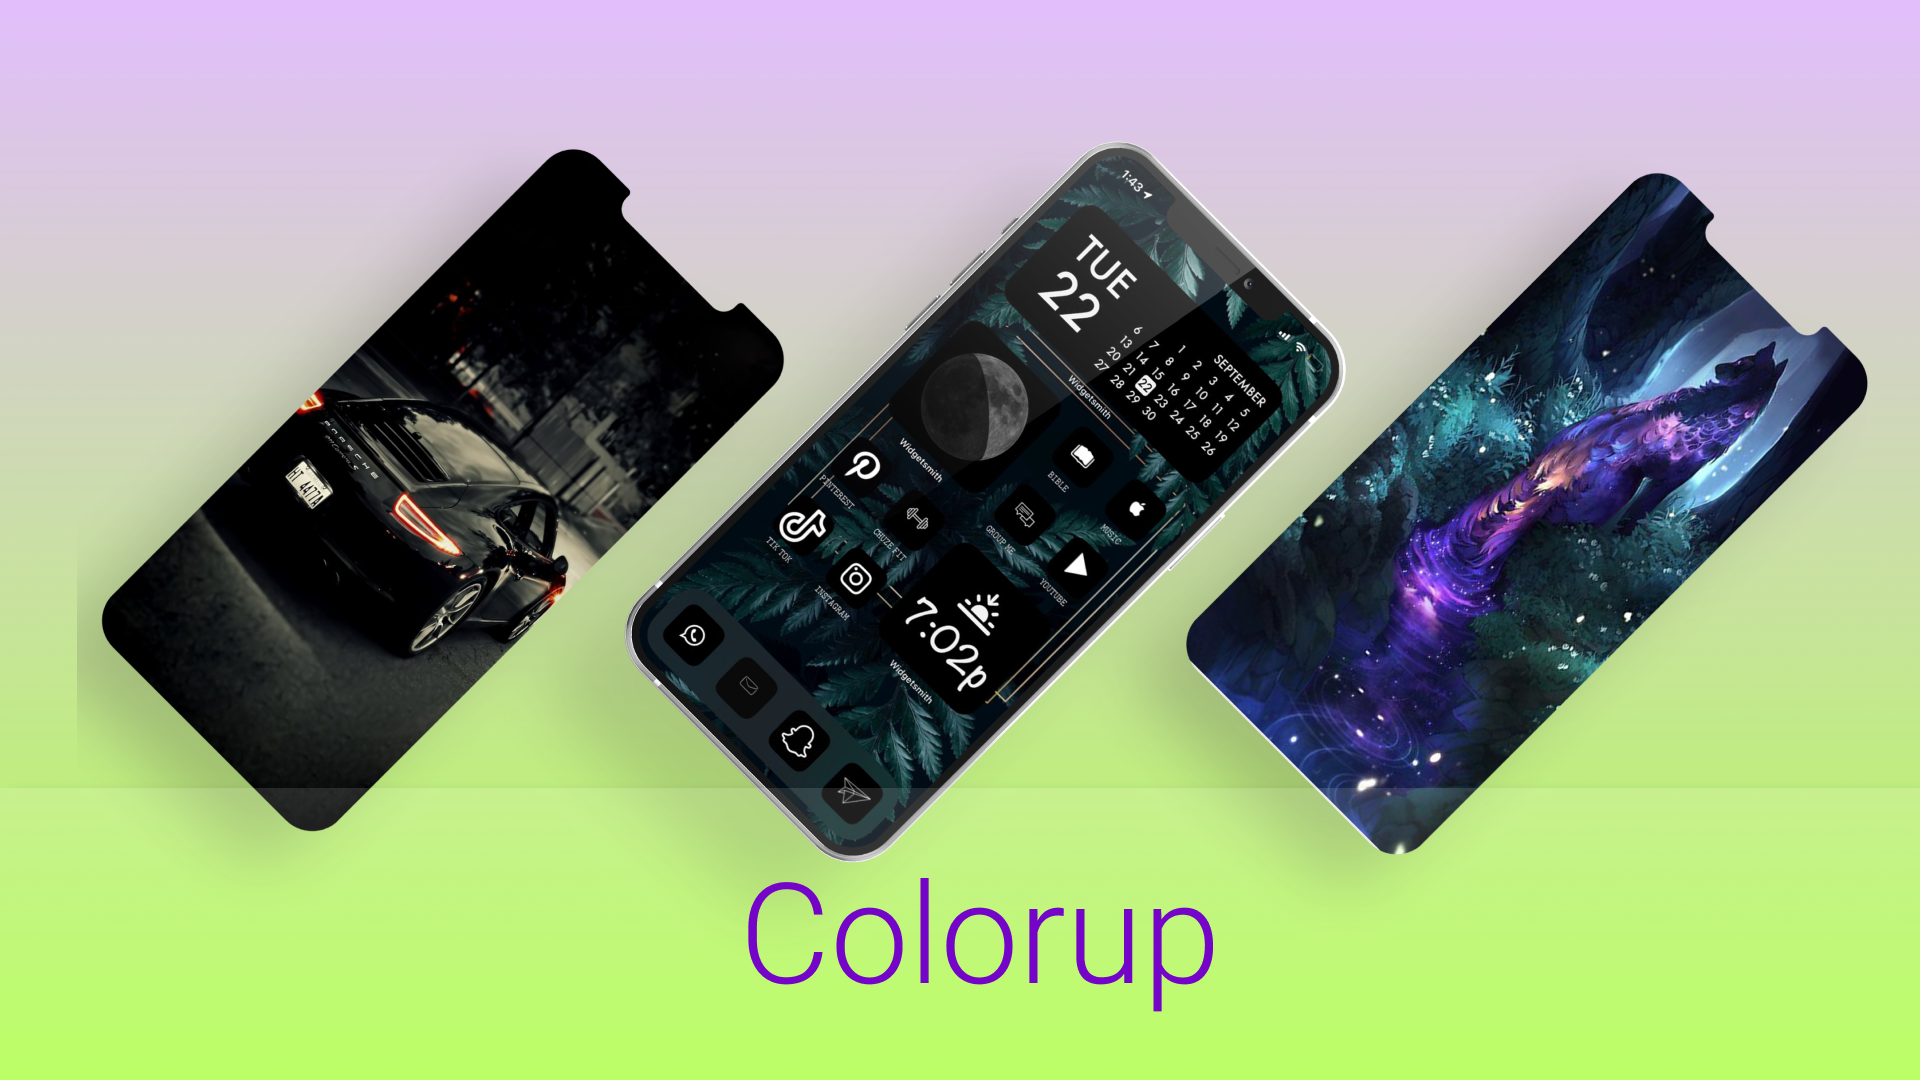 Colorup -iOS themes and wallpaper downloader without jailbreak